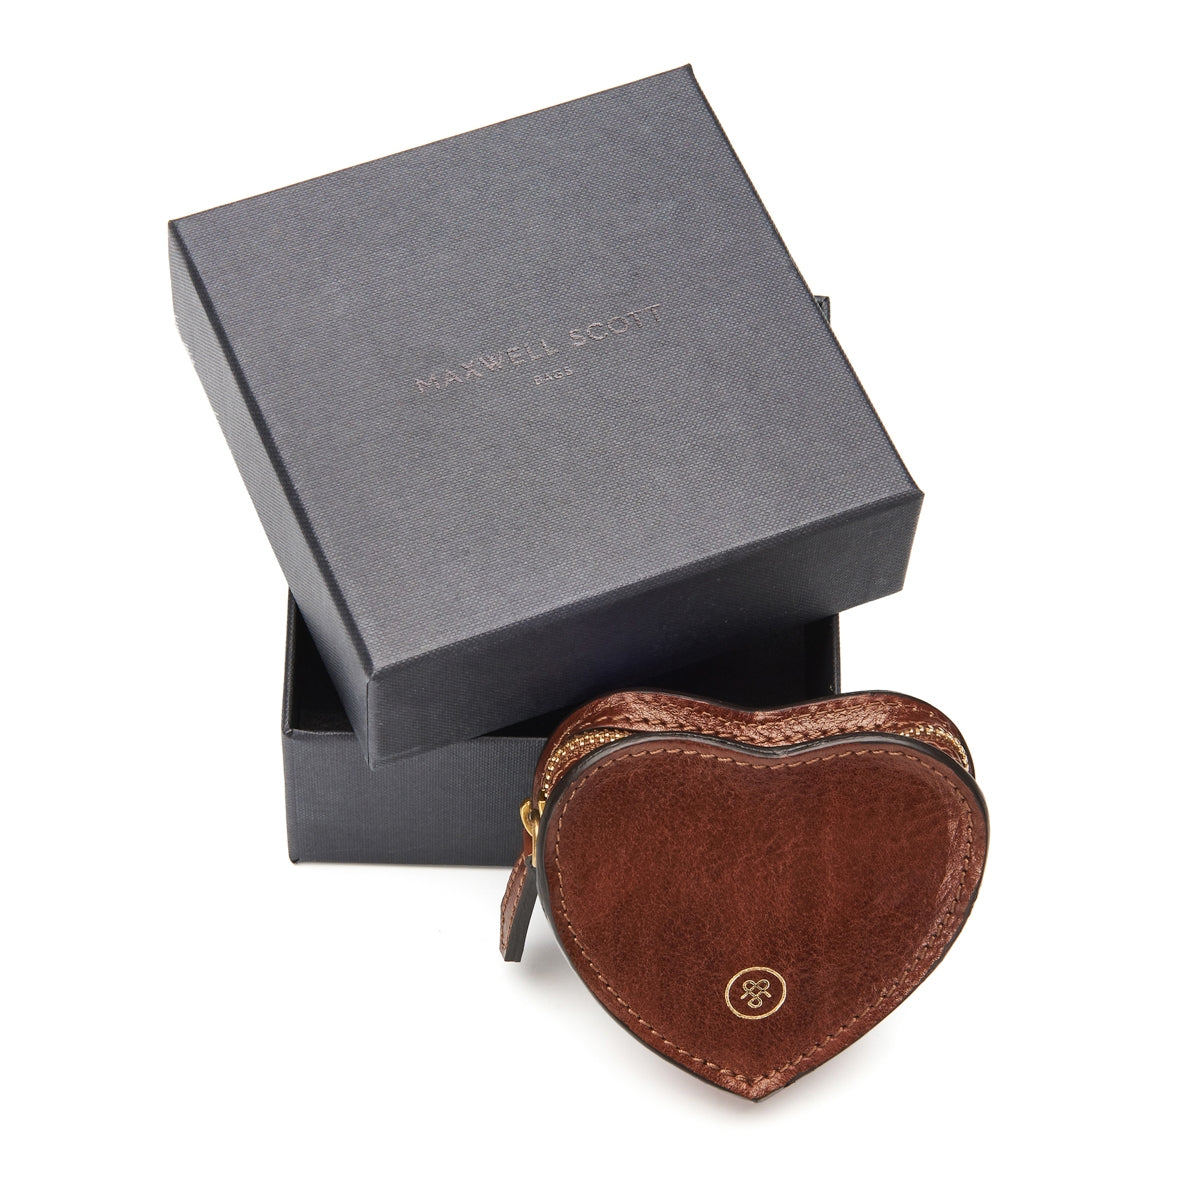 Image 6 of the 'Mirabella' Tan Leather Heart Coin Purse